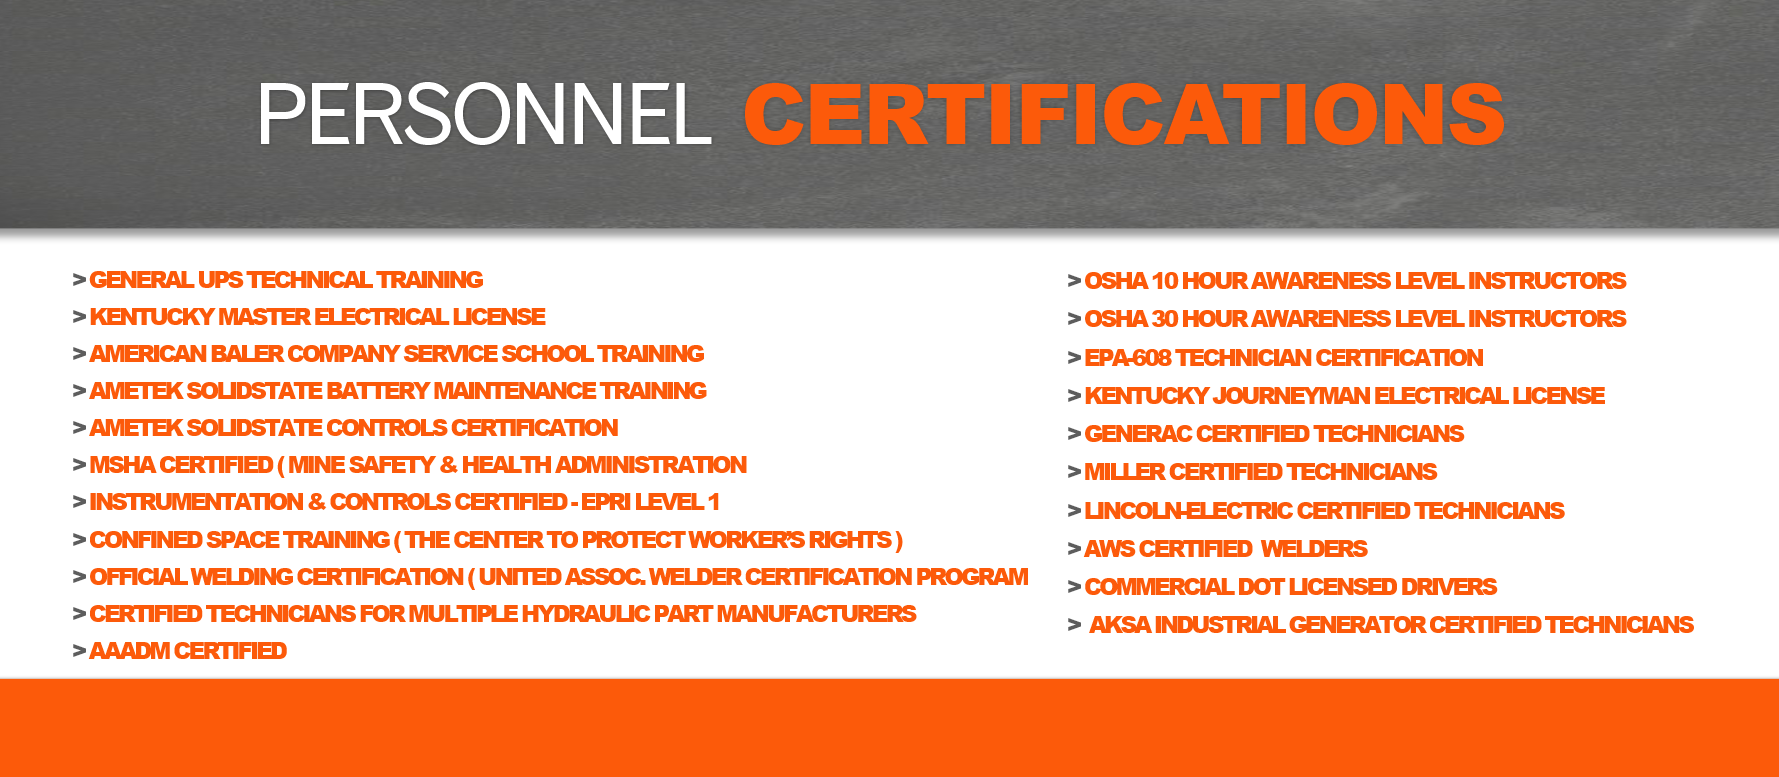 G c multiservices certifications check out the programs courses and certifications that make our people your people xflitez Image collections